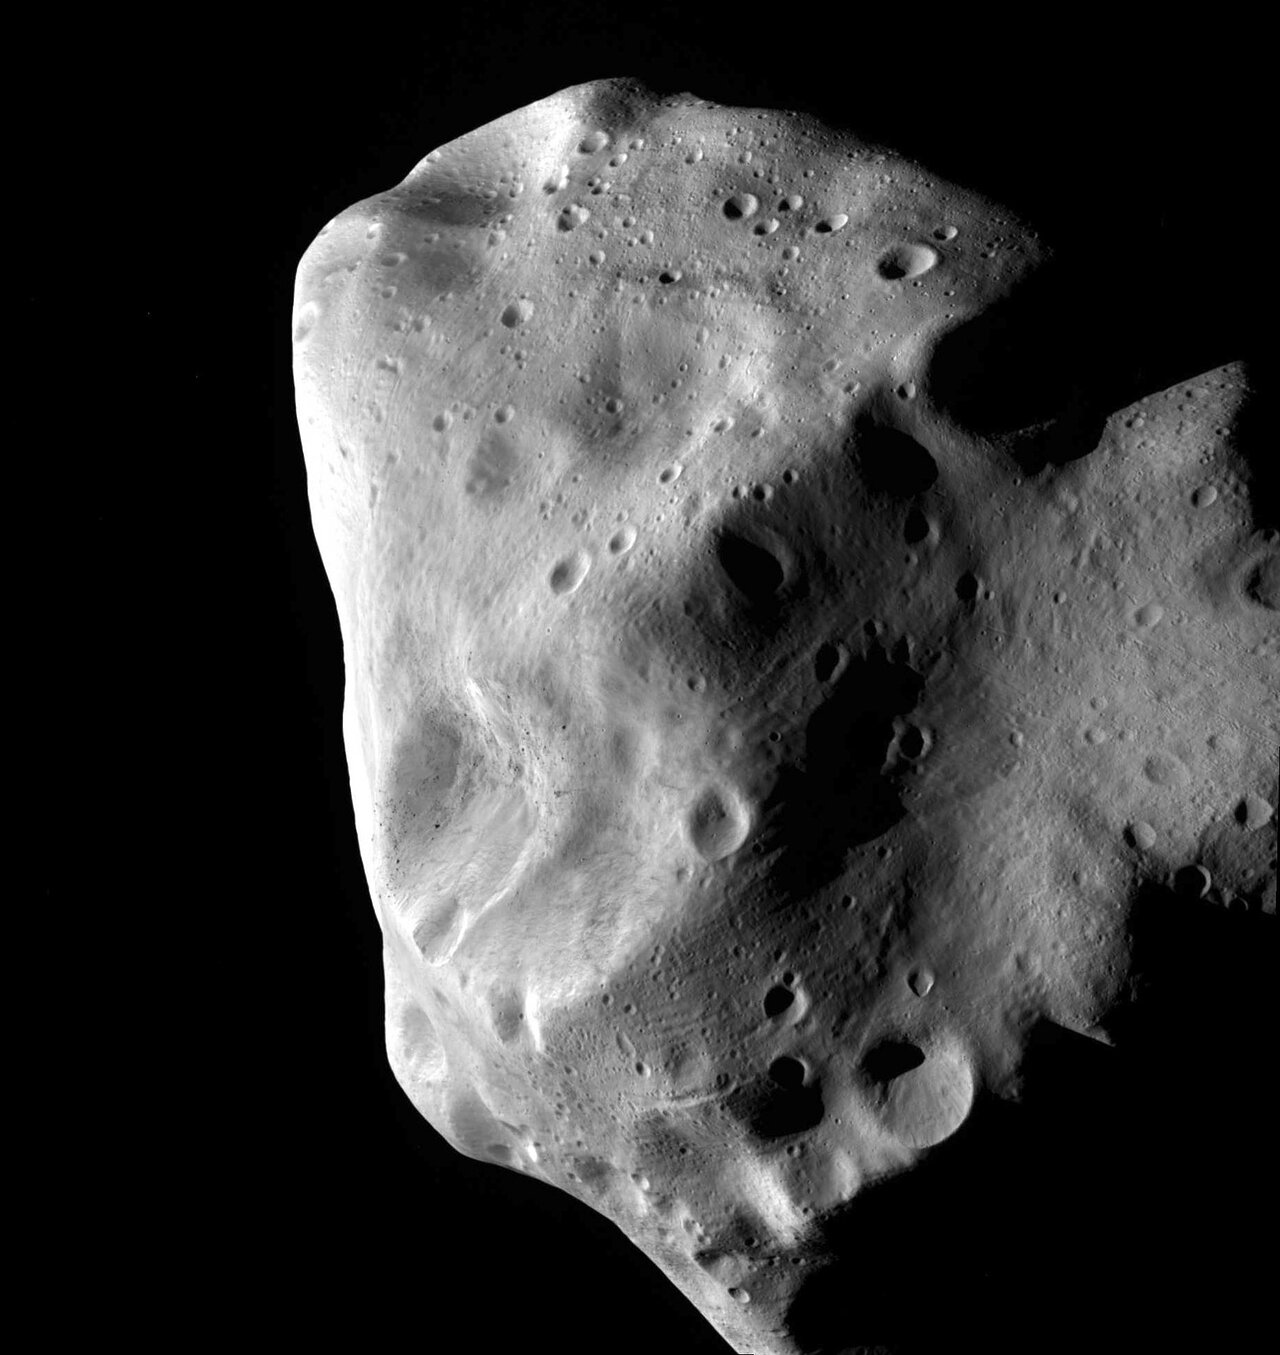 an image of the strange asteroid lutetia from the esa rosetta probe